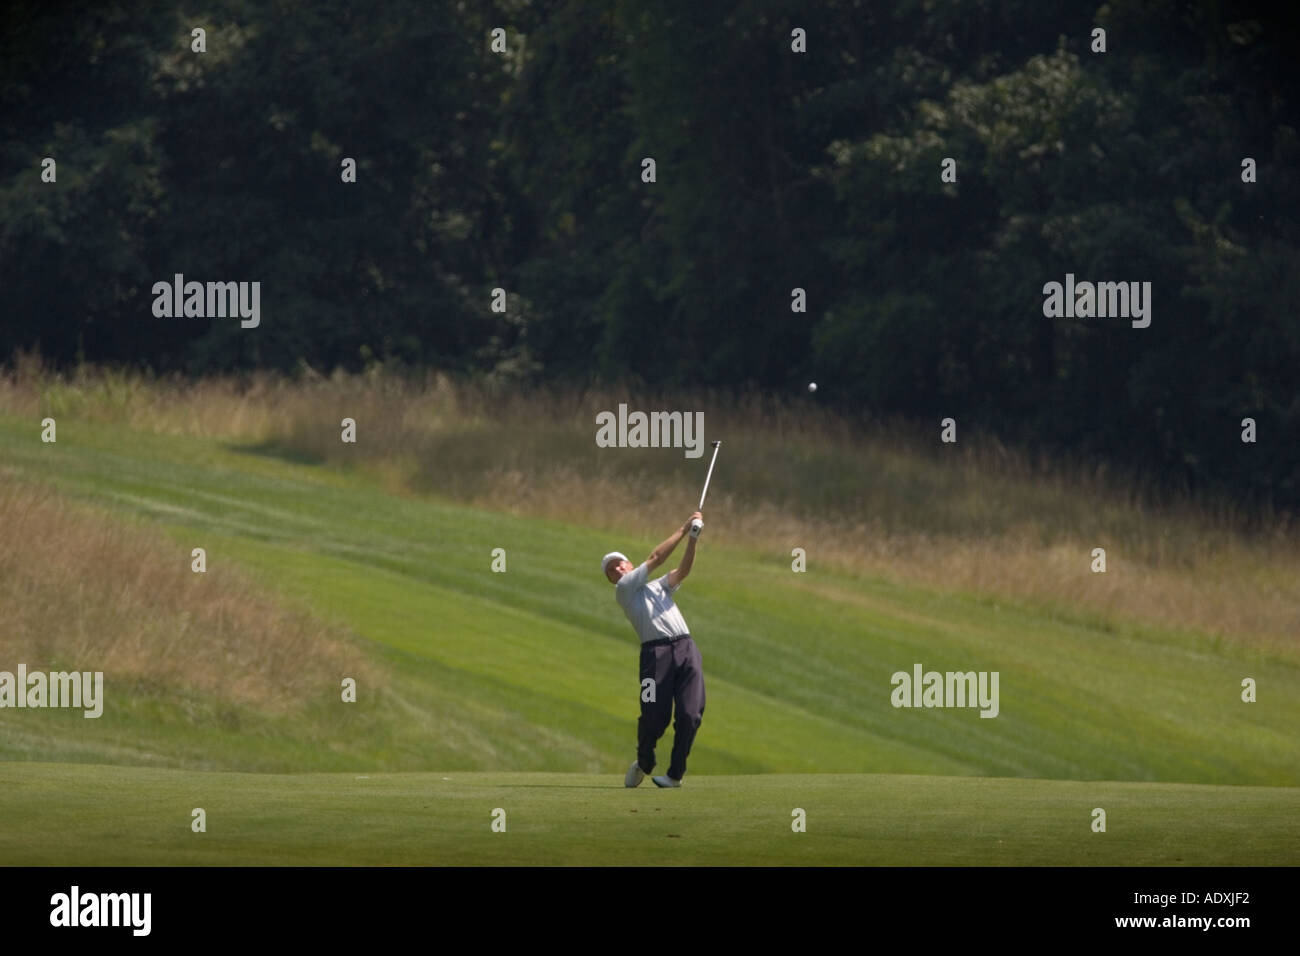 Golfer hitting a ball on a fairway - Stock Image